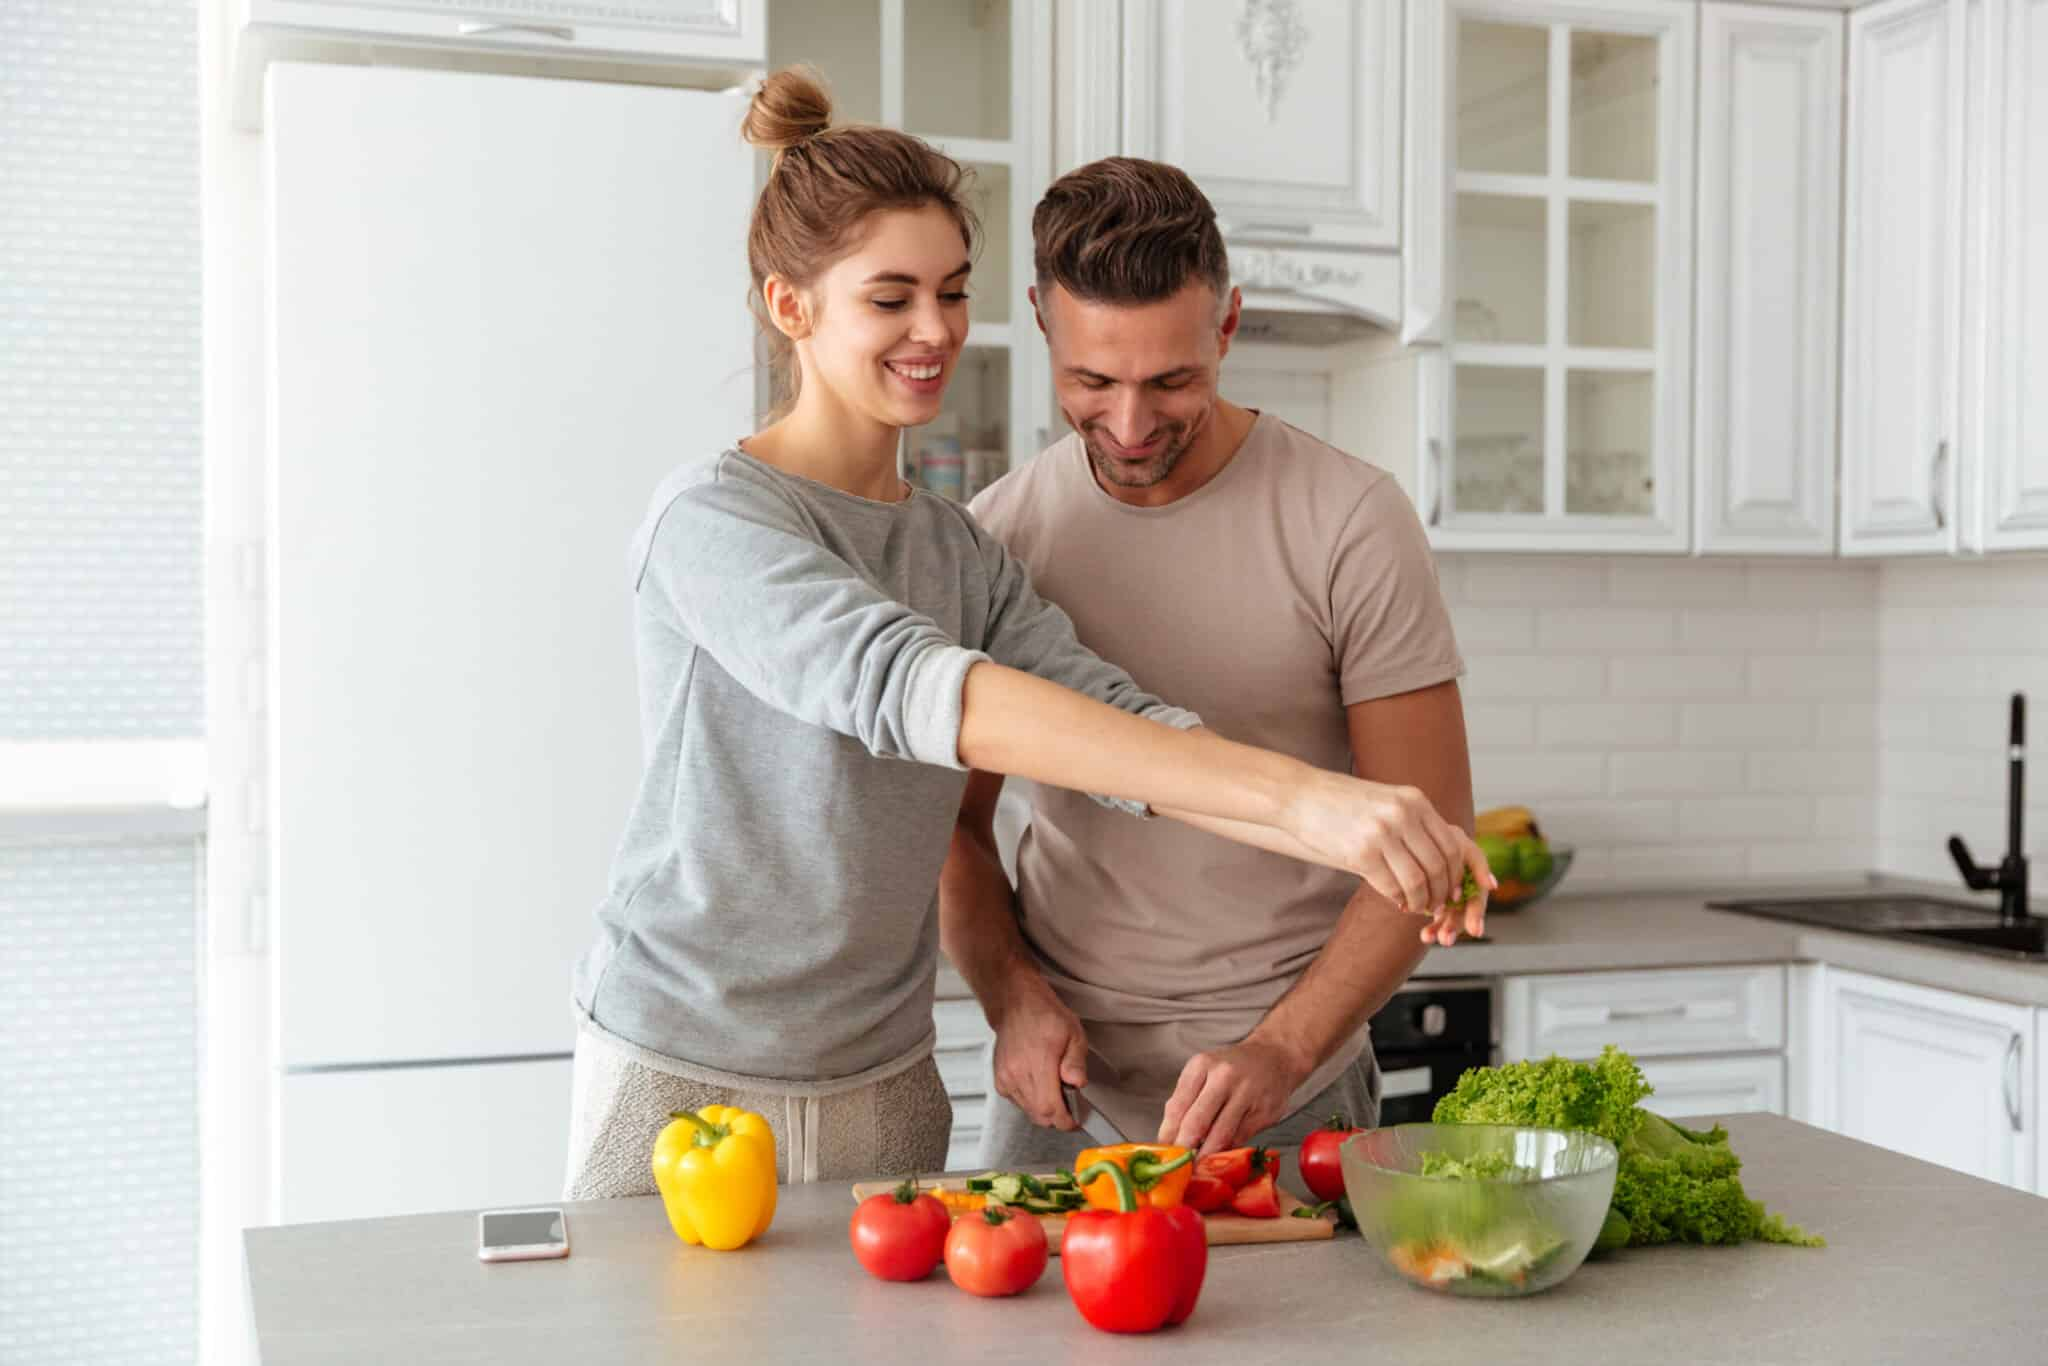 your relationship with a fitness freak is balancing on a very serious knife point of food habits.